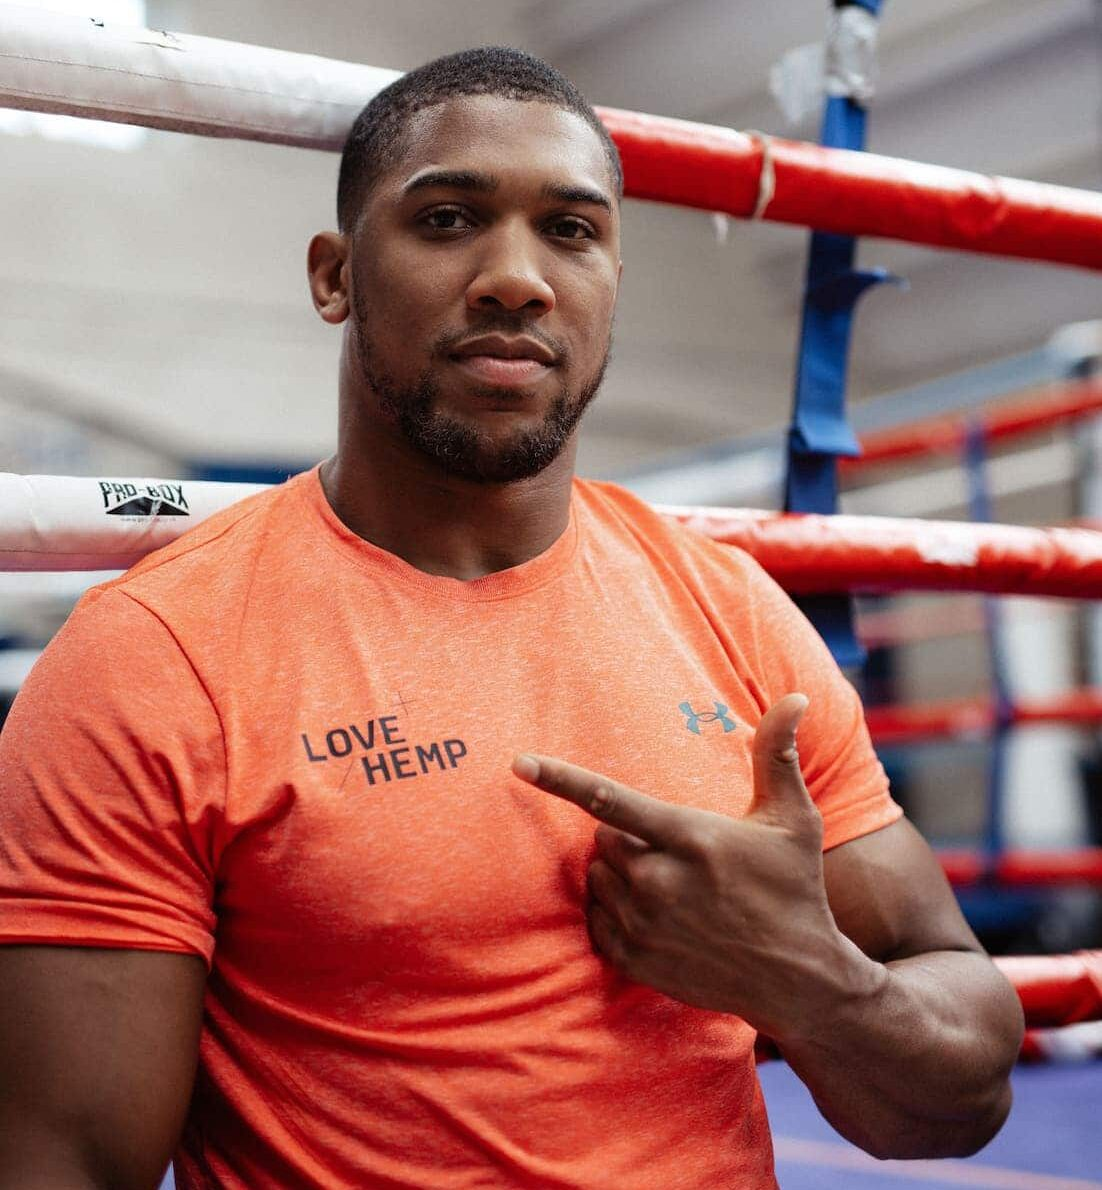 Love Hemp, one of the UK's leading CBD and hemp product suppliers, has signed a three-year Endorsement Agreement with the British boxing legend.